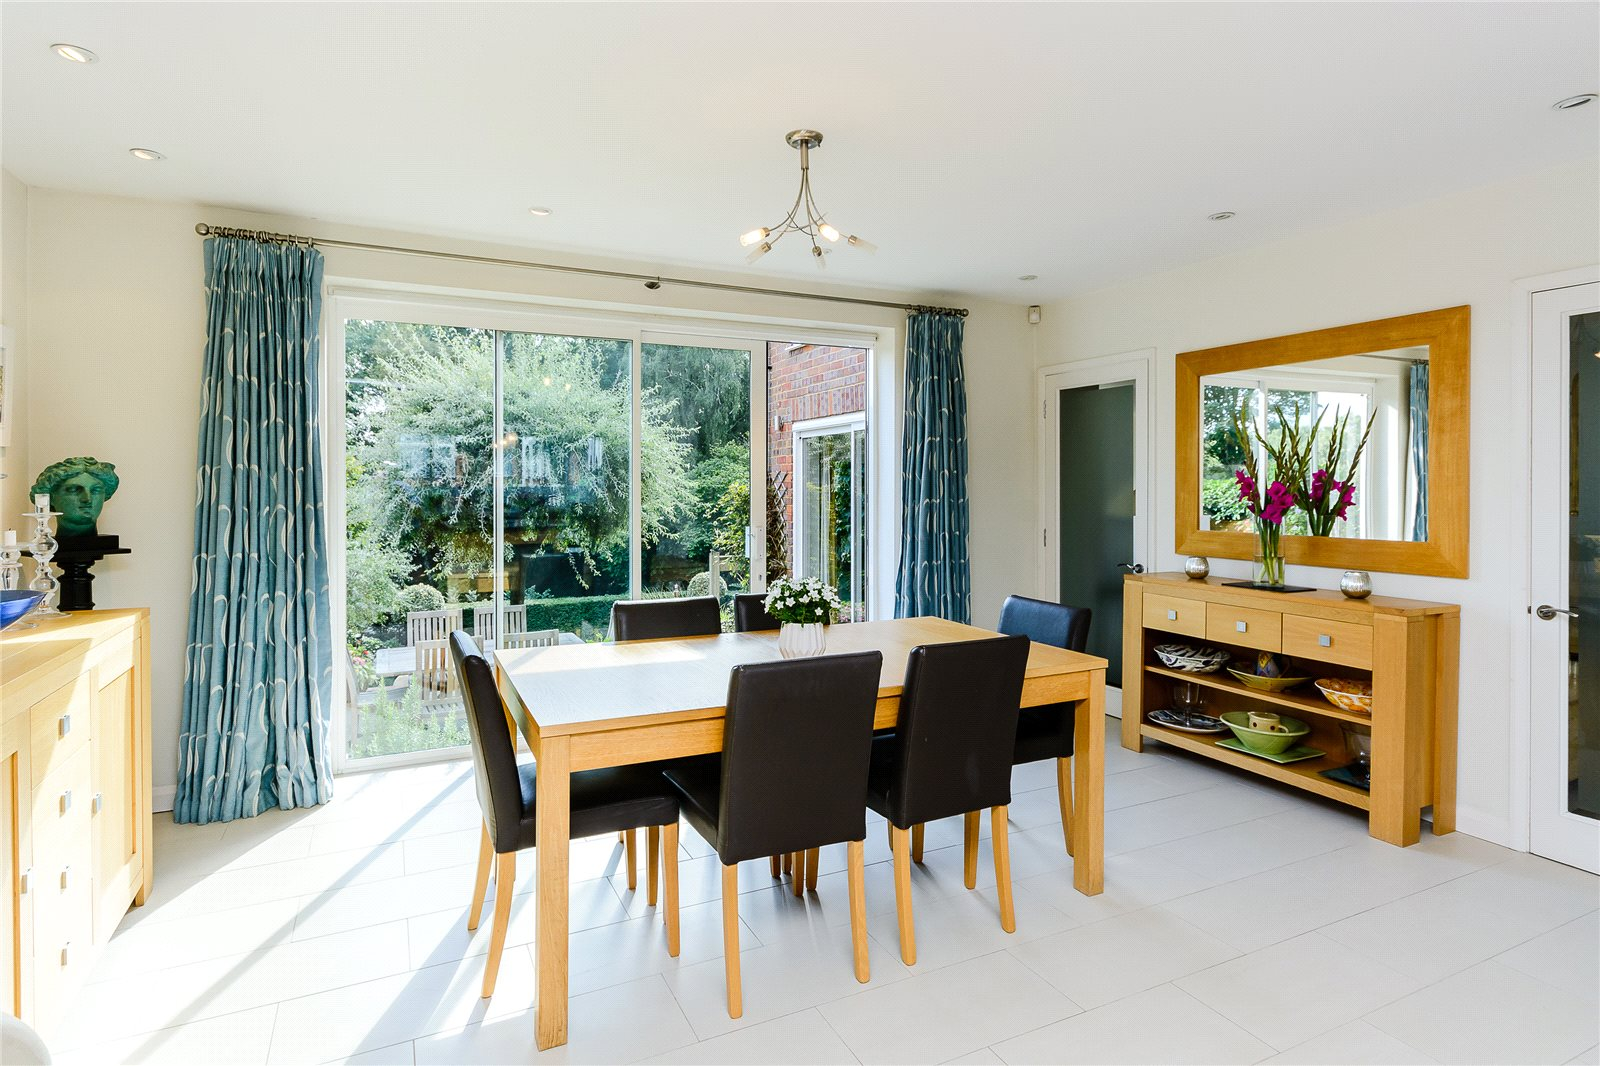 Additional photo for property listing at Orchard Grove, Chalfont St Peter, Buckinghamshire, SL9 Chalfont St Peter, England